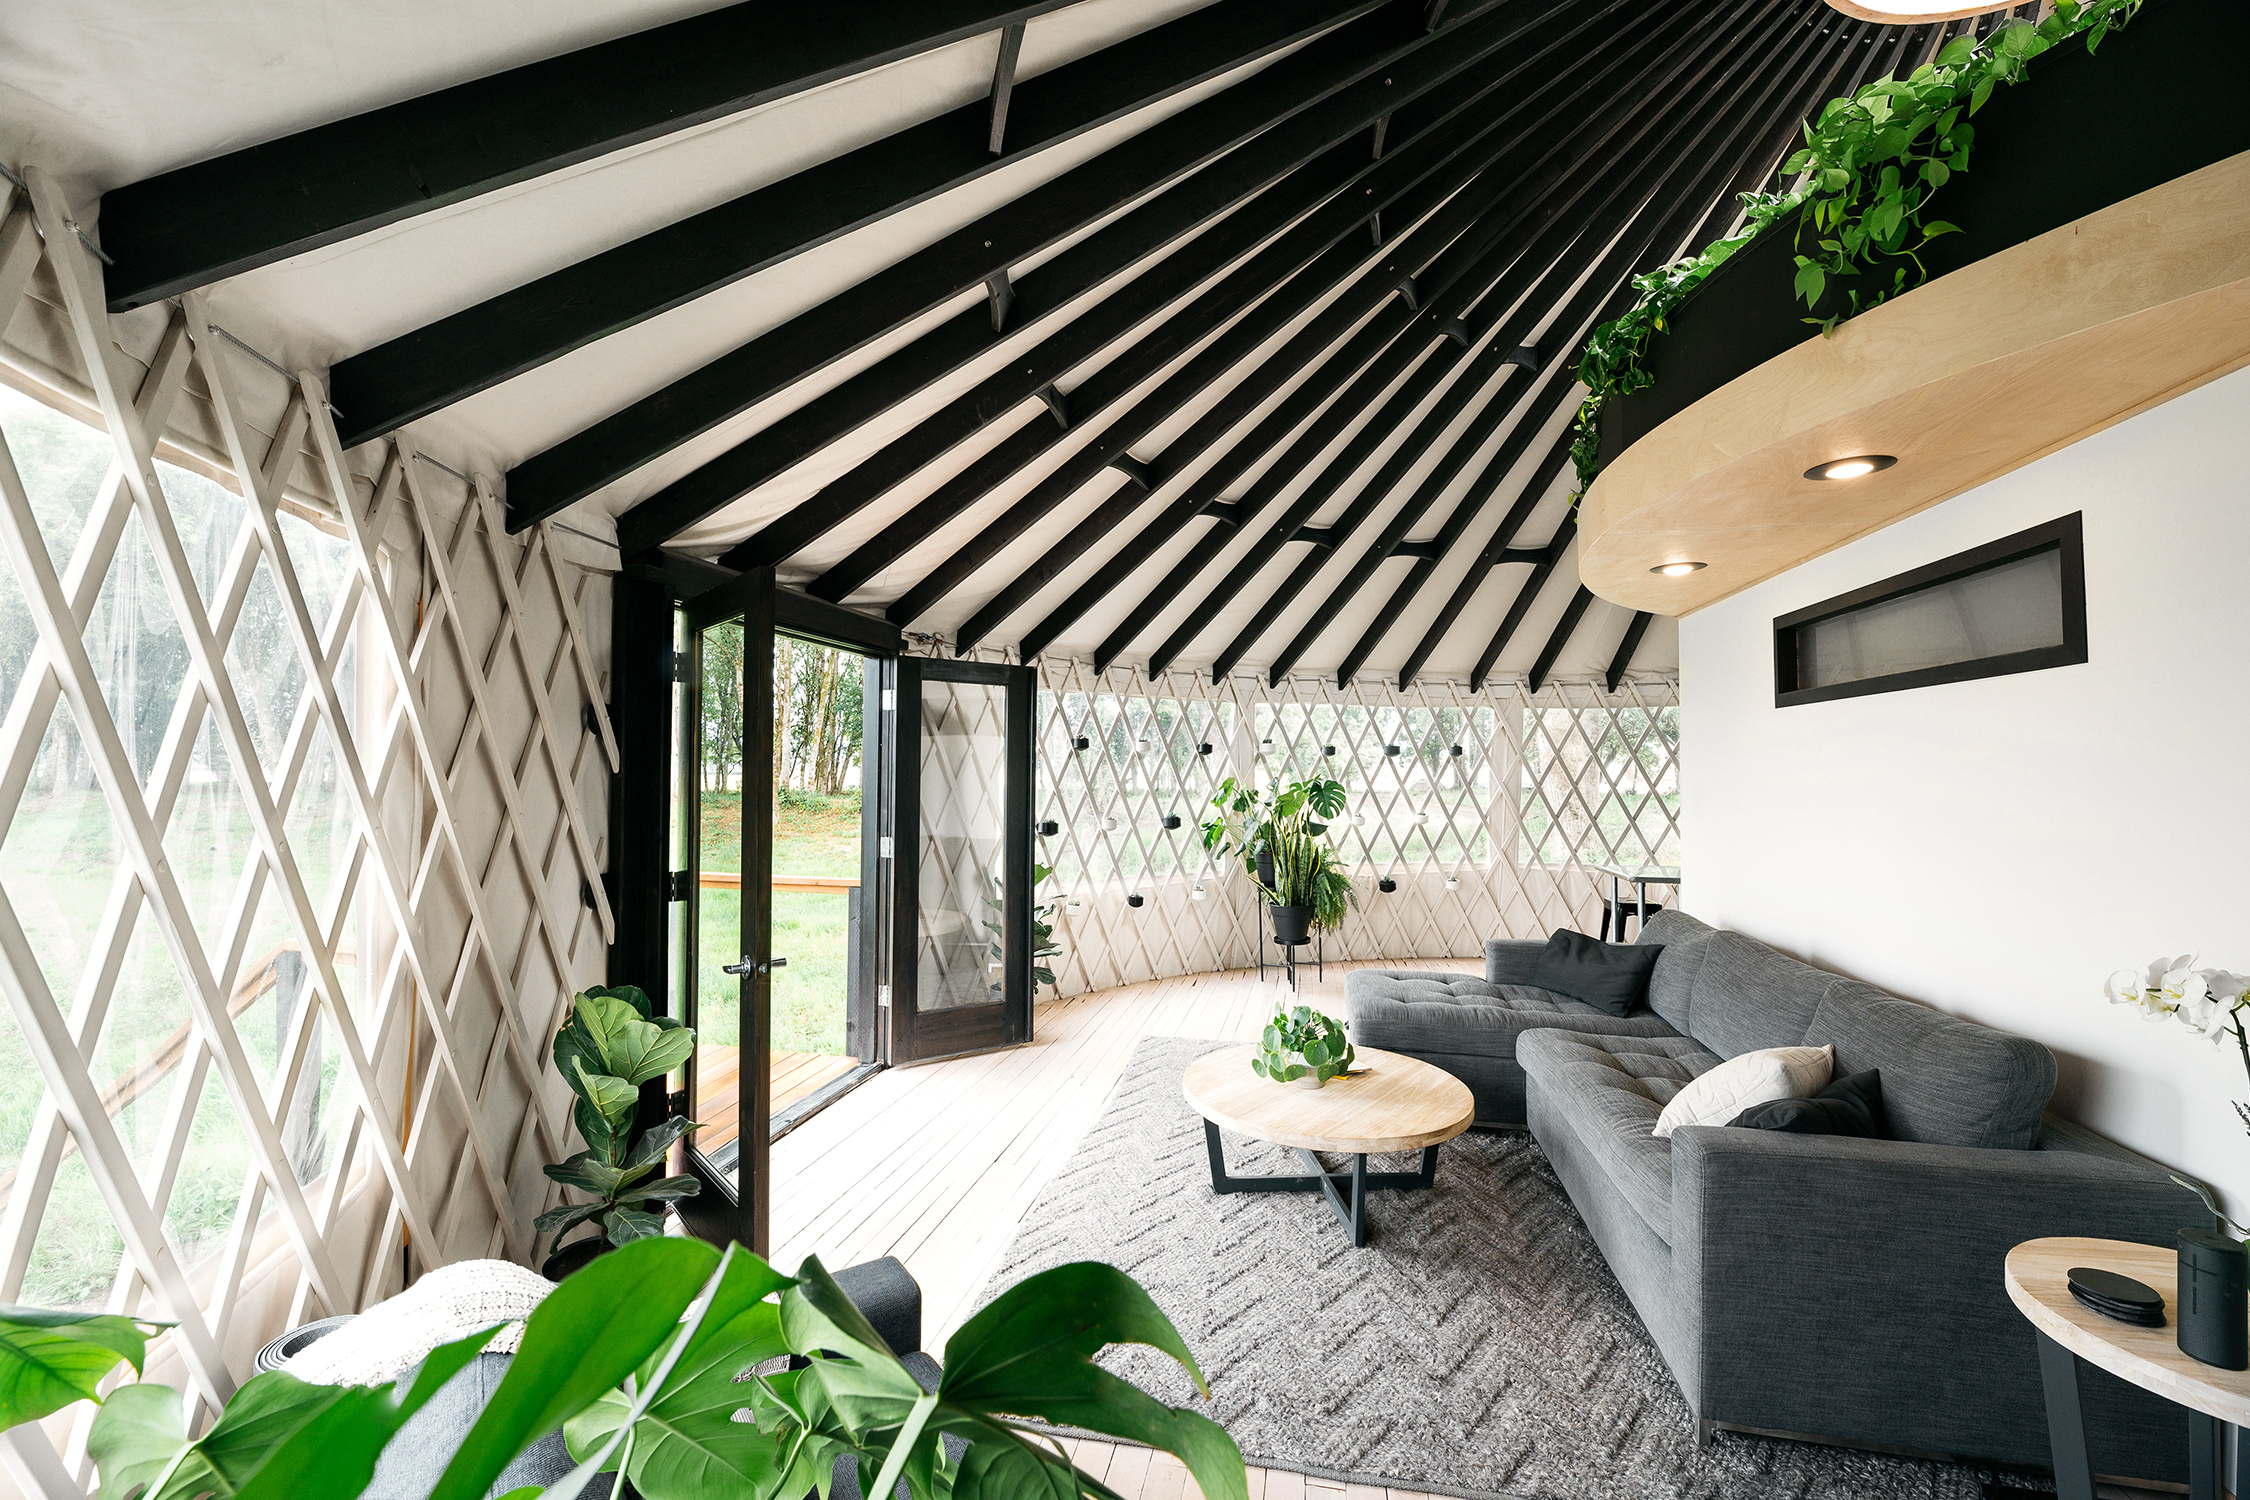 Move Into A Modern Foliage Filled Yurt Sunset Magazine The basic design is essentially like an enhanced tent. move into a modern foliage filled yurt